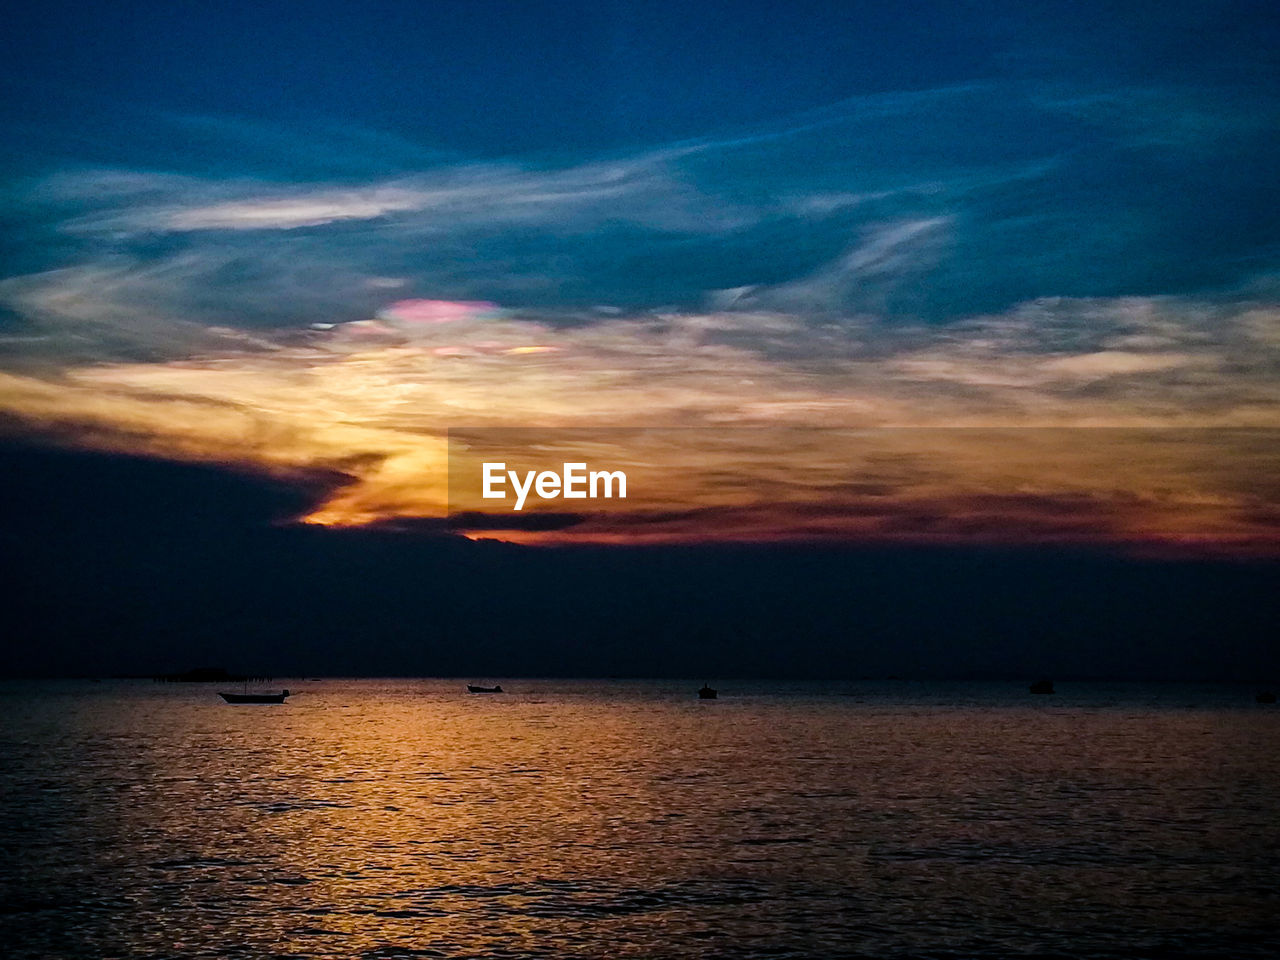 sky, cloud - sky, water, scenics - nature, sunset, tranquility, sea, tranquil scene, beauty in nature, waterfront, nature, horizon, orange color, no people, horizon over water, idyllic, dramatic sky, outdoors, non-urban scene